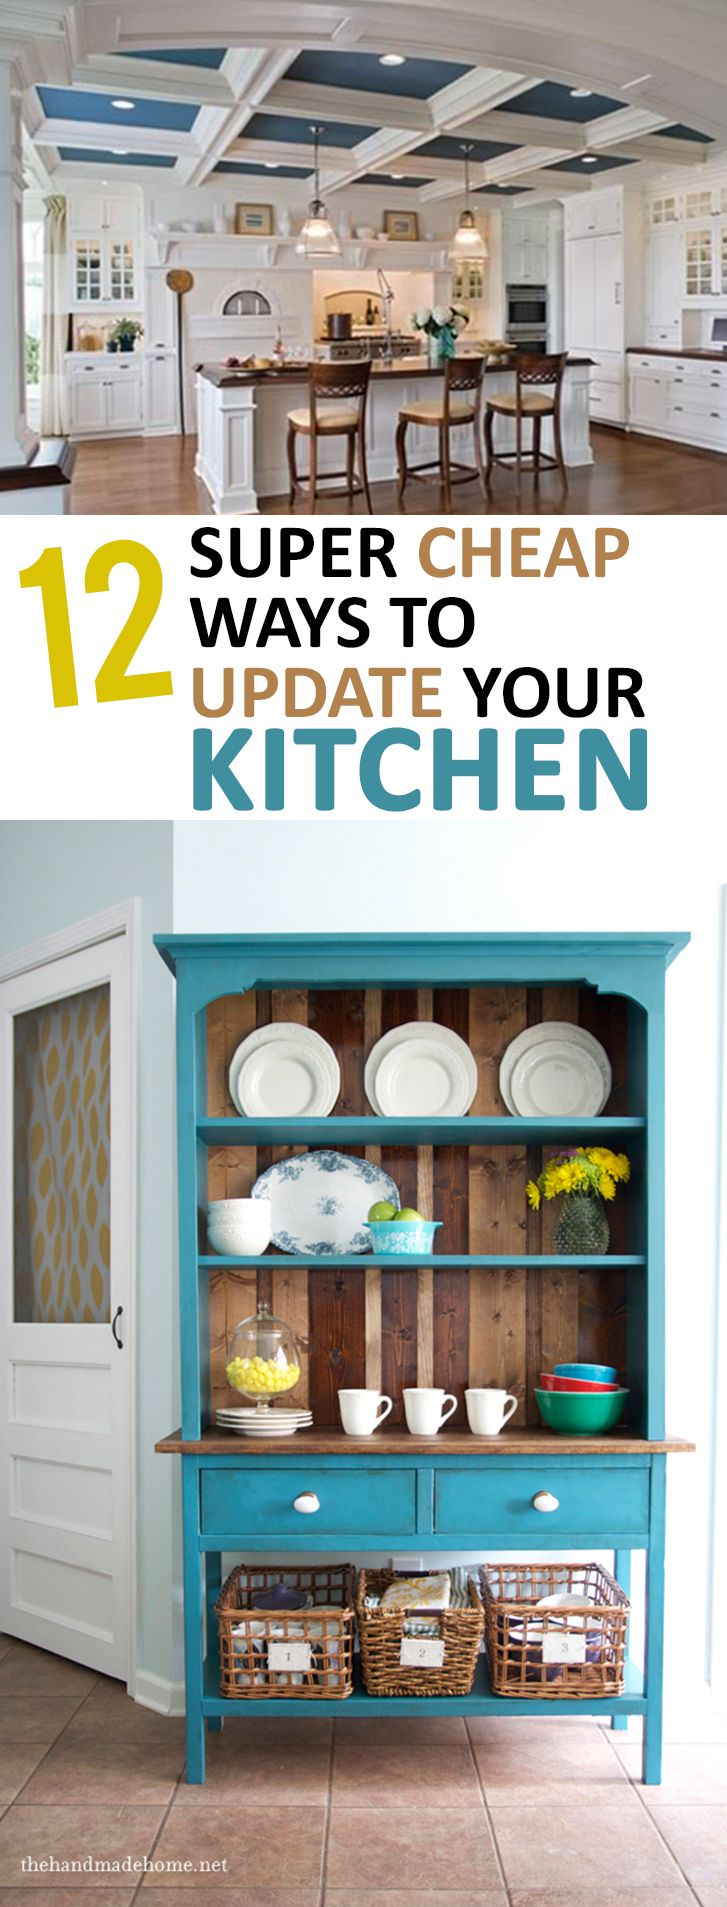 12 Ways to Update Your Kitchen | Kitchens, Kitchen decor and House